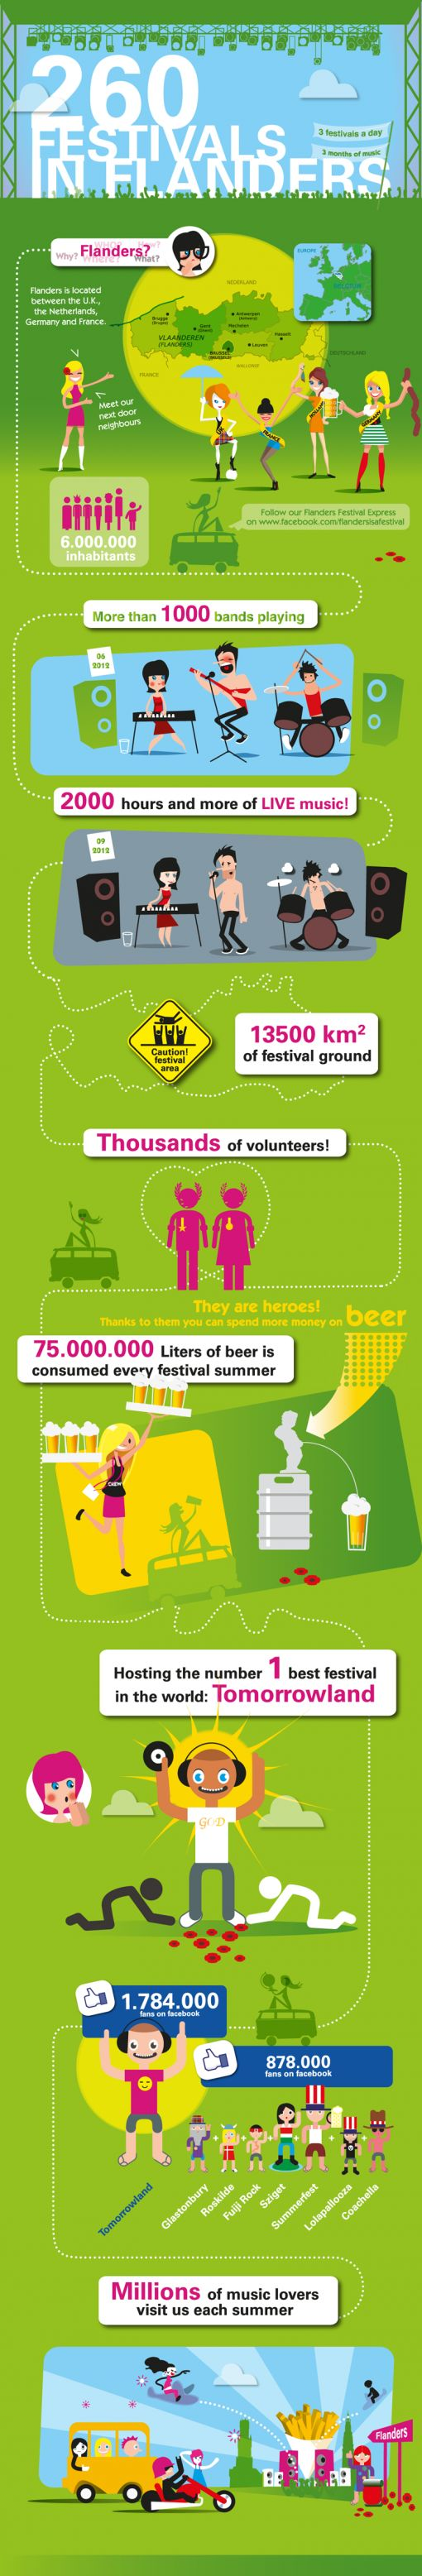 260-festivals-in-flanders-infographic